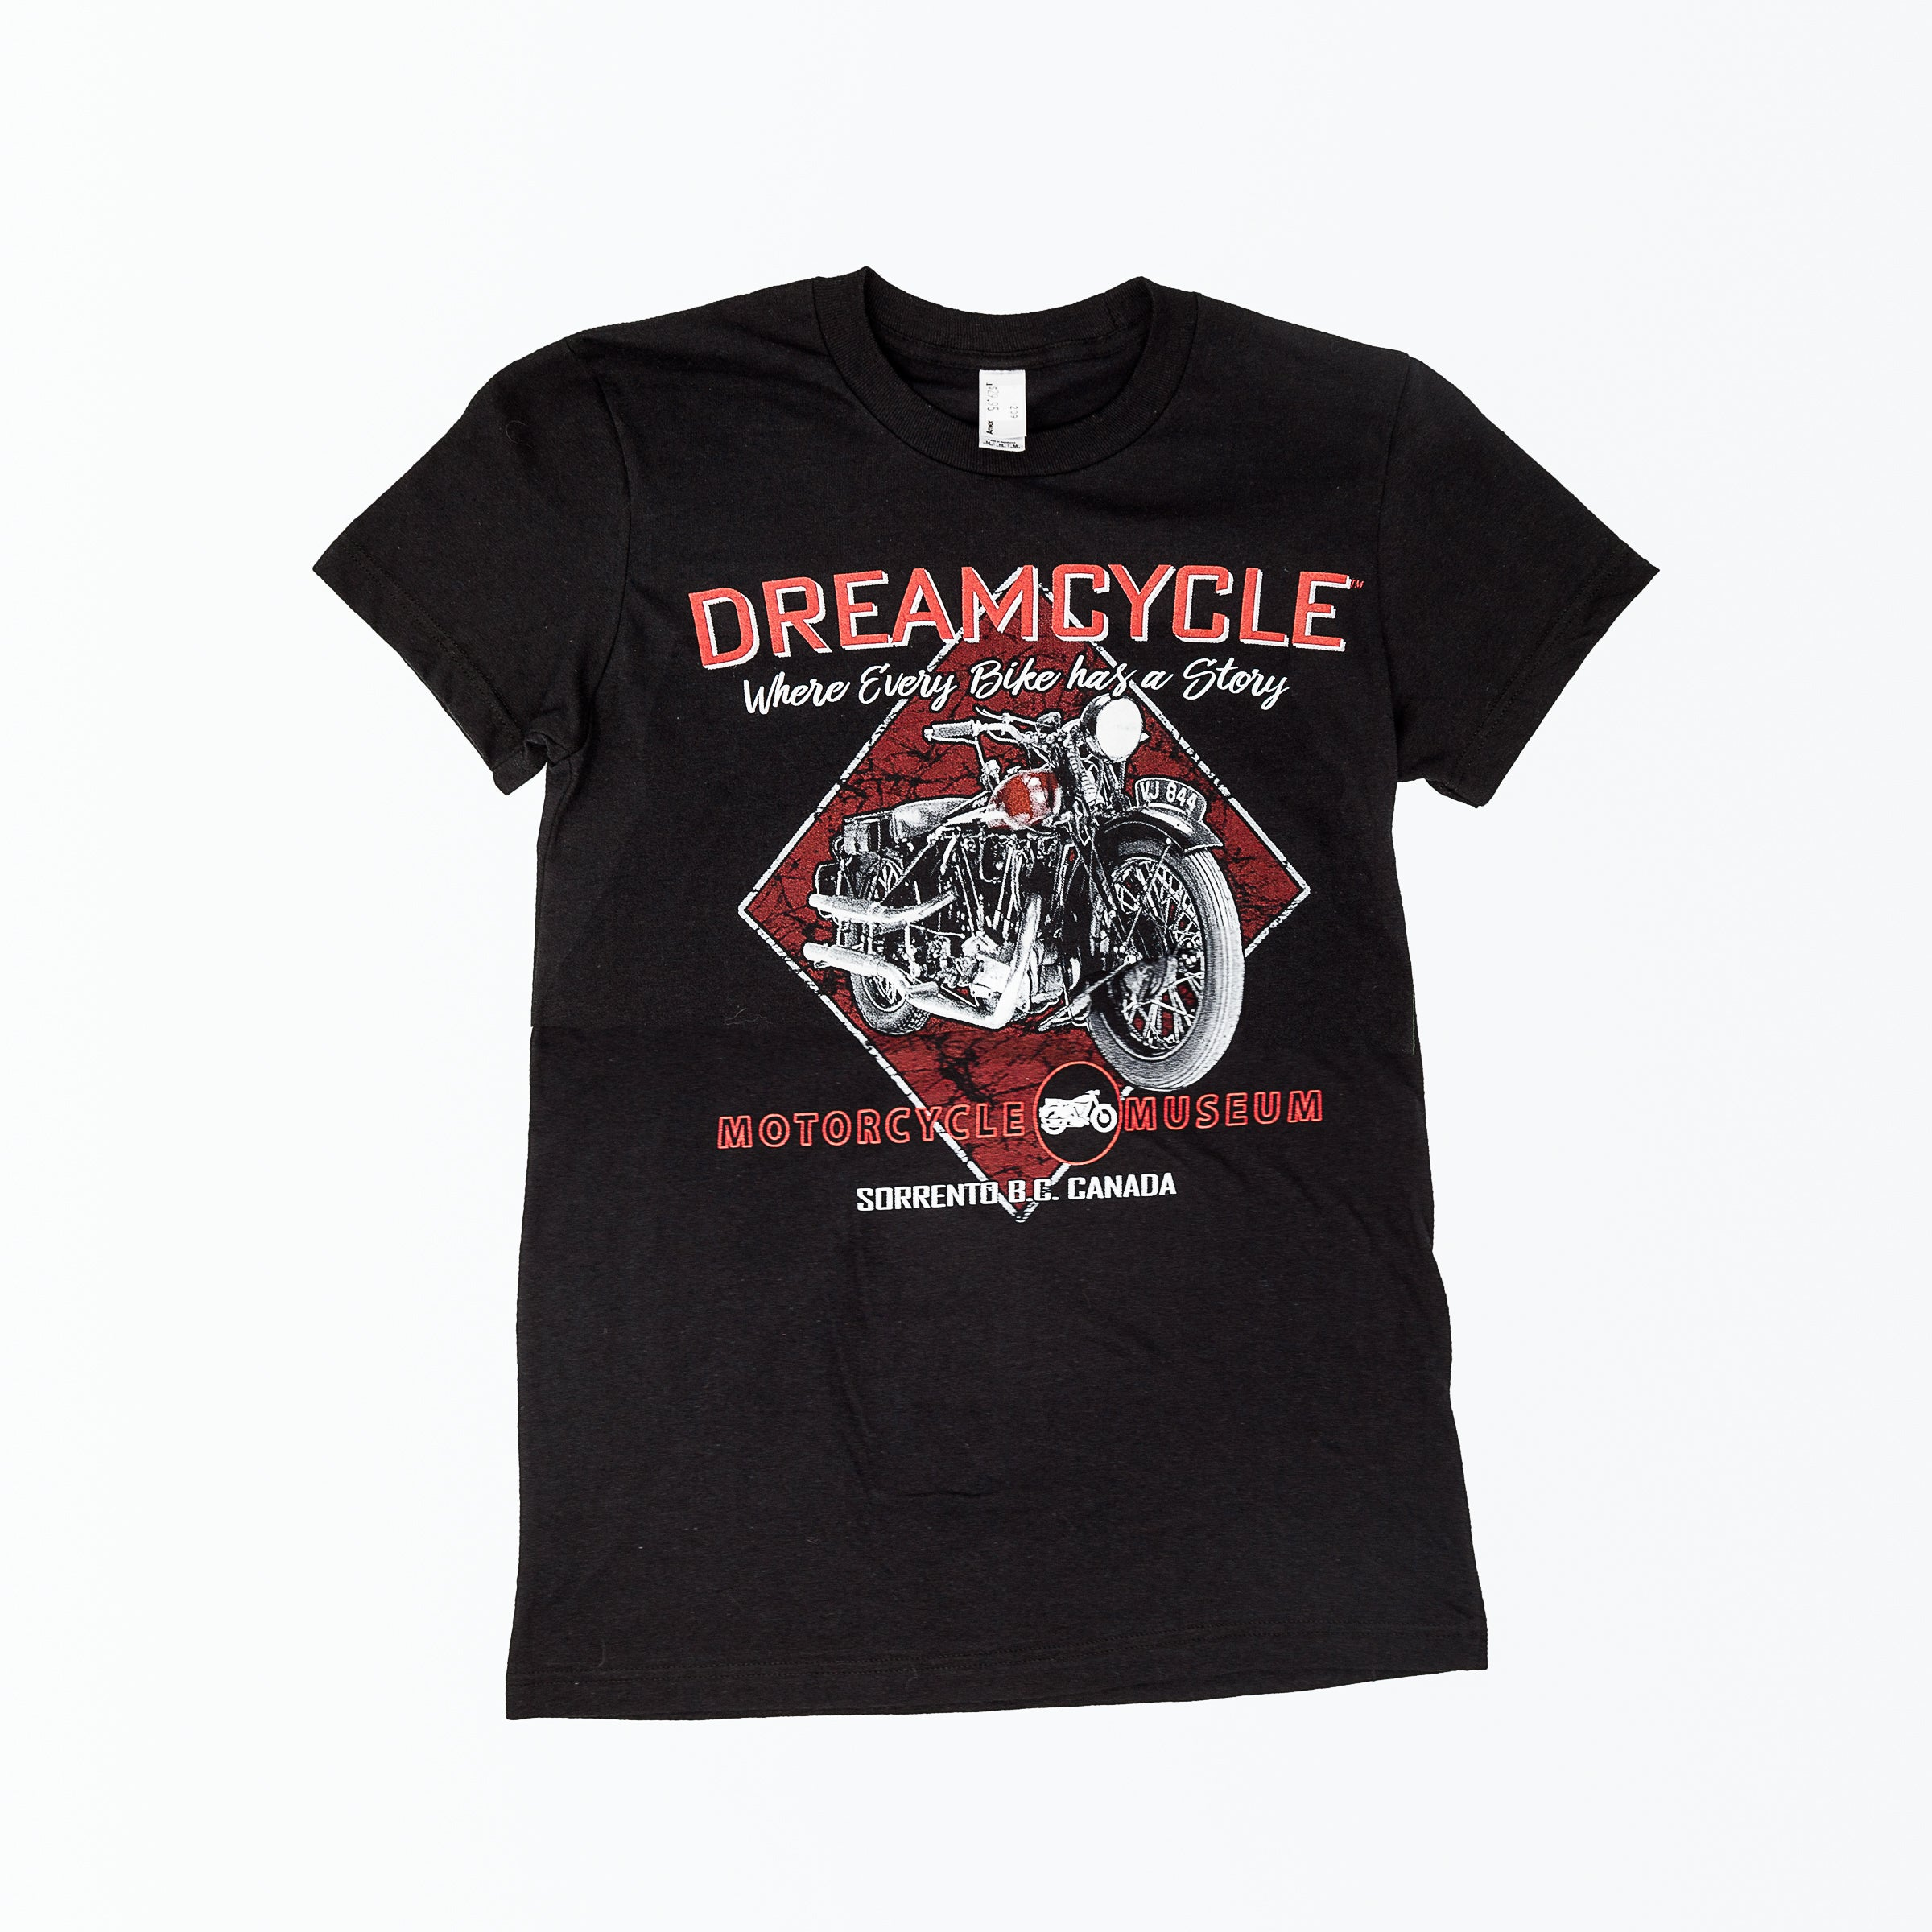 Dreamcycle Motorcycle Museum |  Dreamcycle tshirt on white background.